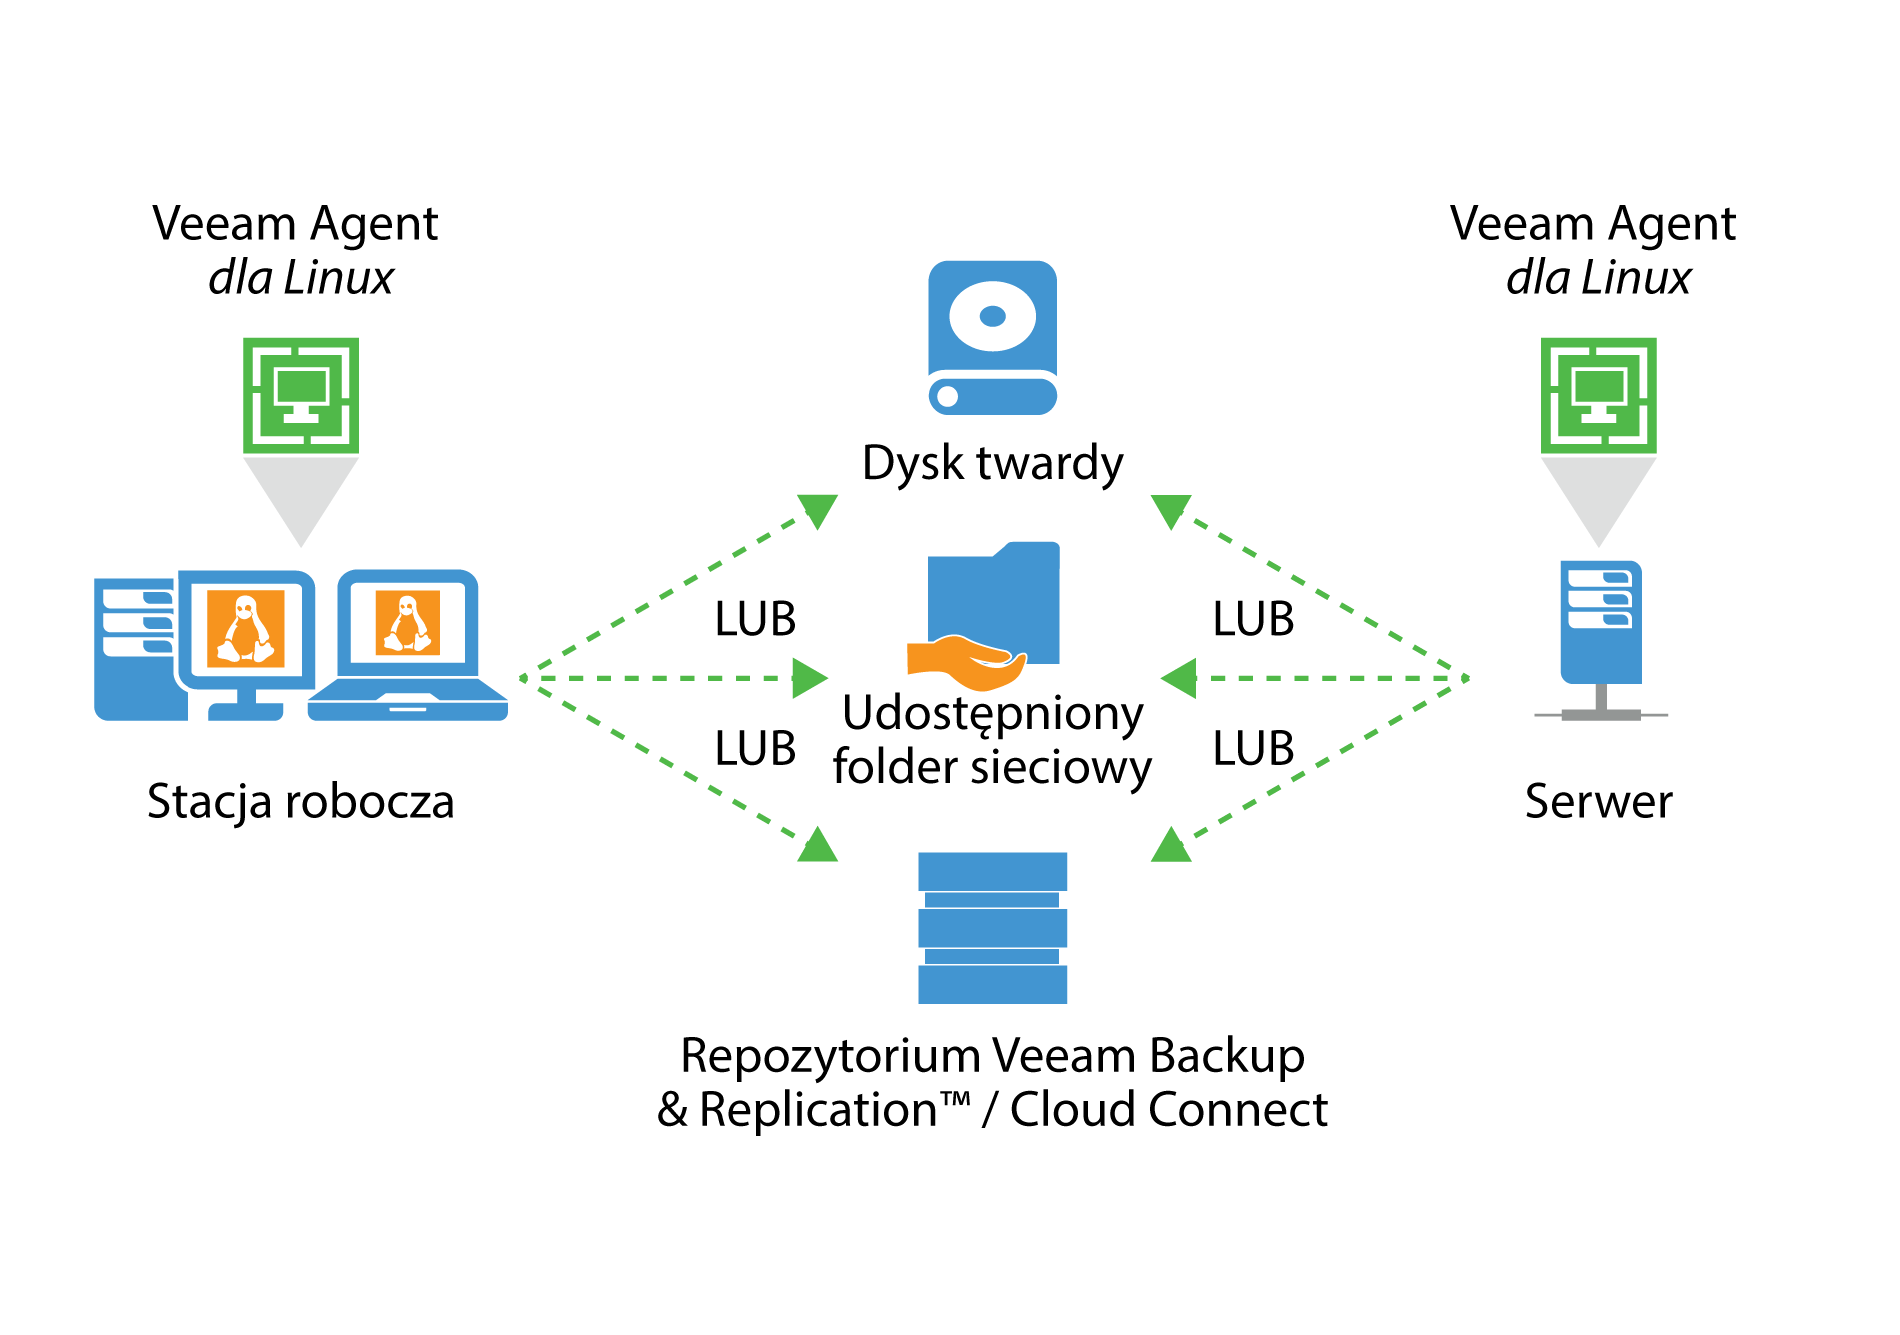 veeam_endpoint_how_it_works_for_linux_pl.png